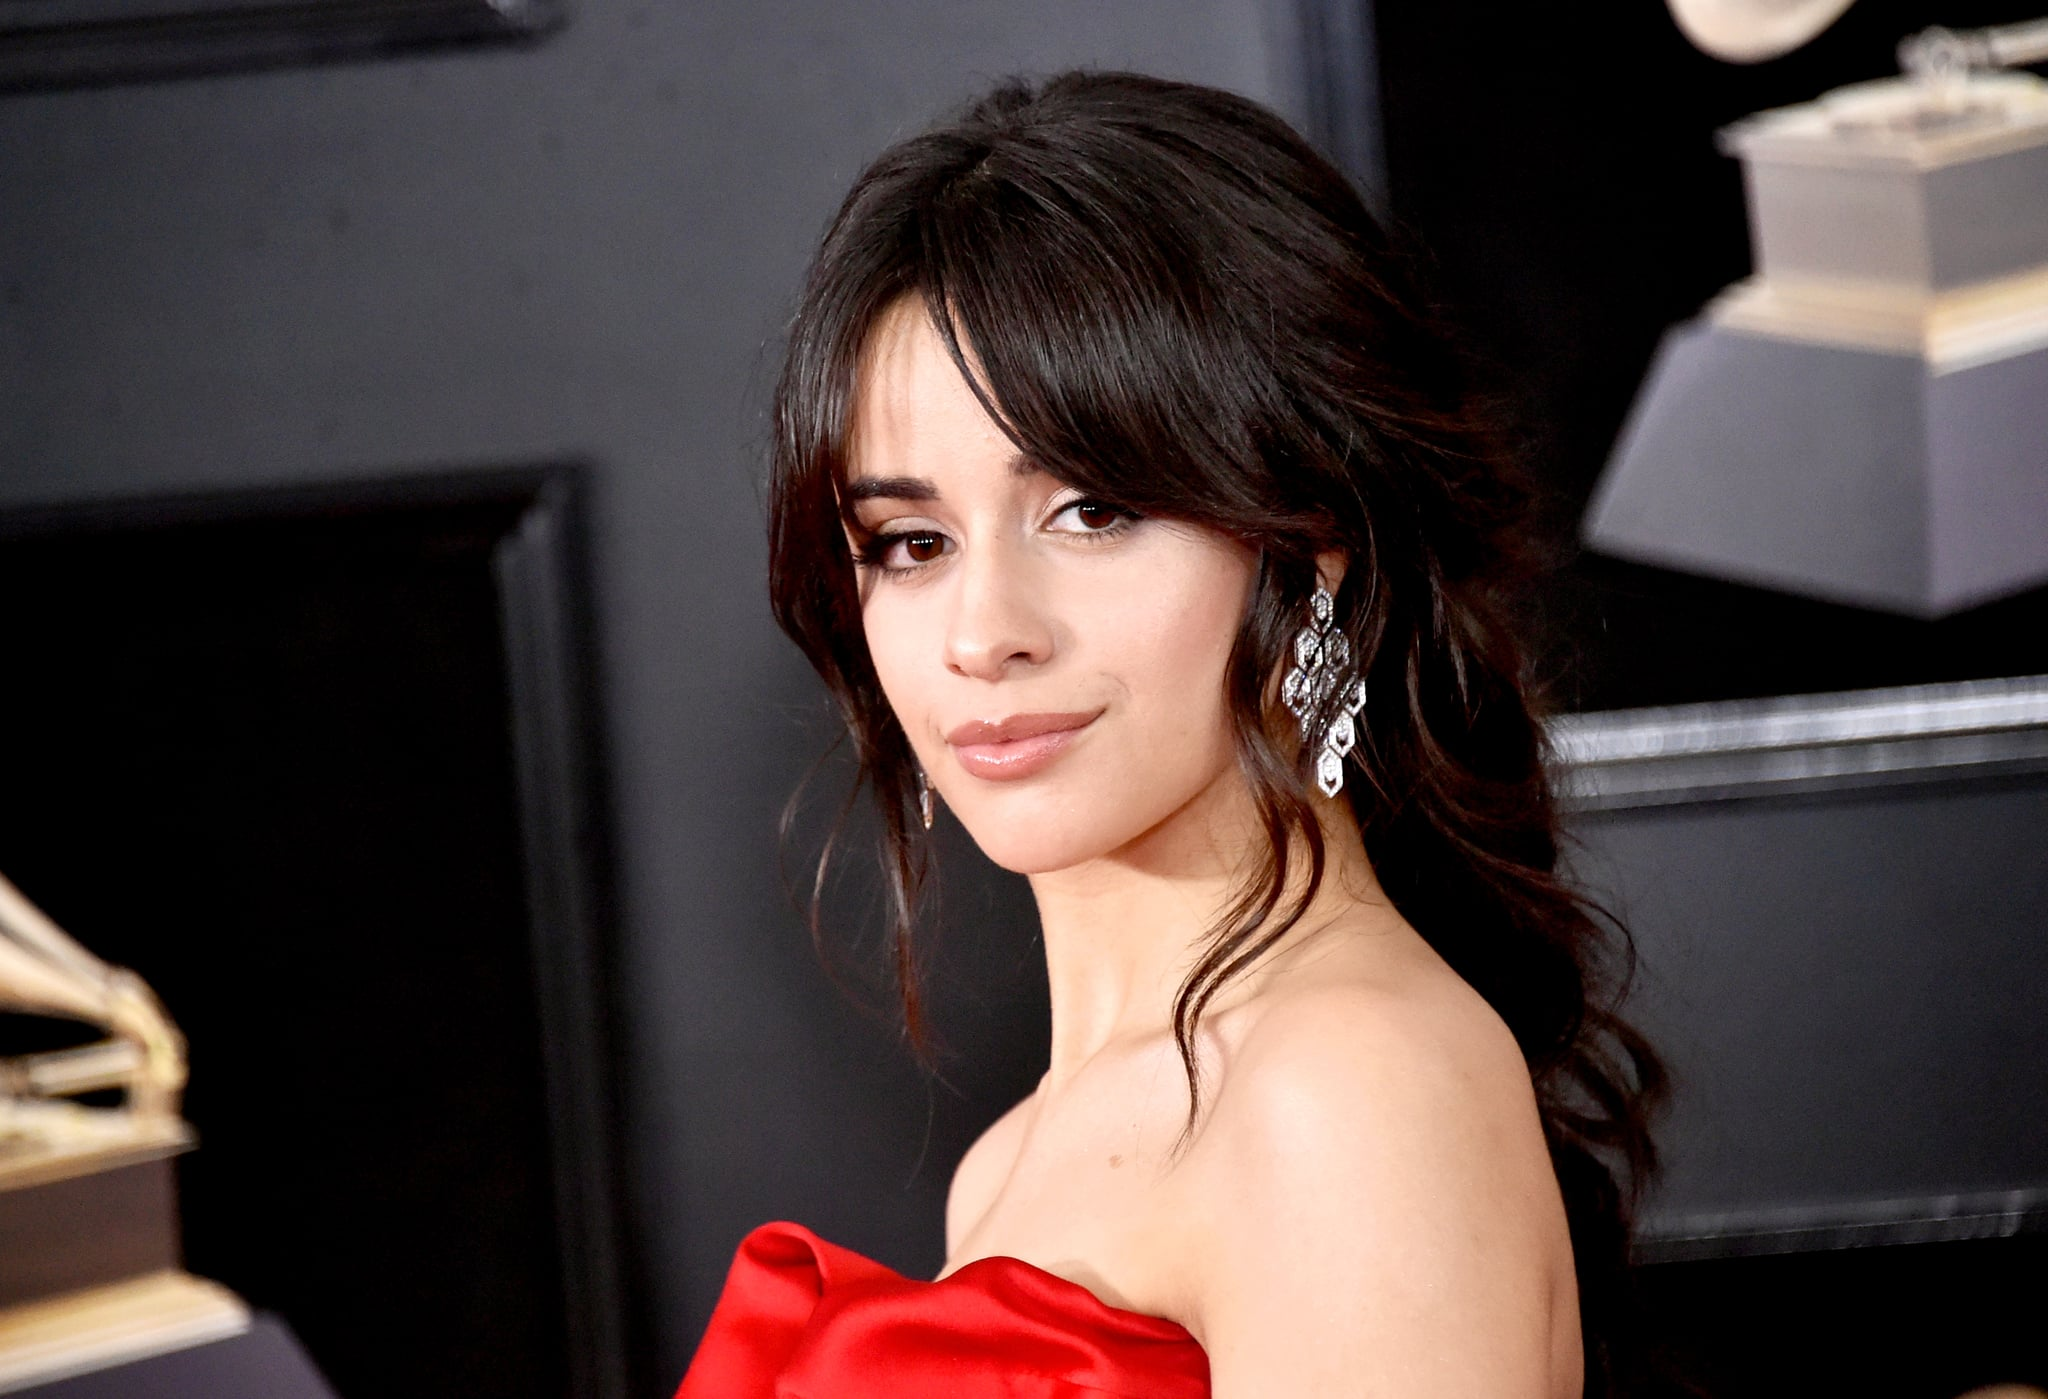 NEW YORK, NY - JANUARY 28:  Recording artist Camila Cabello attends the 60th Annual GRAMMY Awards at Madison Square Garden on January 28, 2018 in New York City.  (Photo by Mike Coppola/FilmMagic)